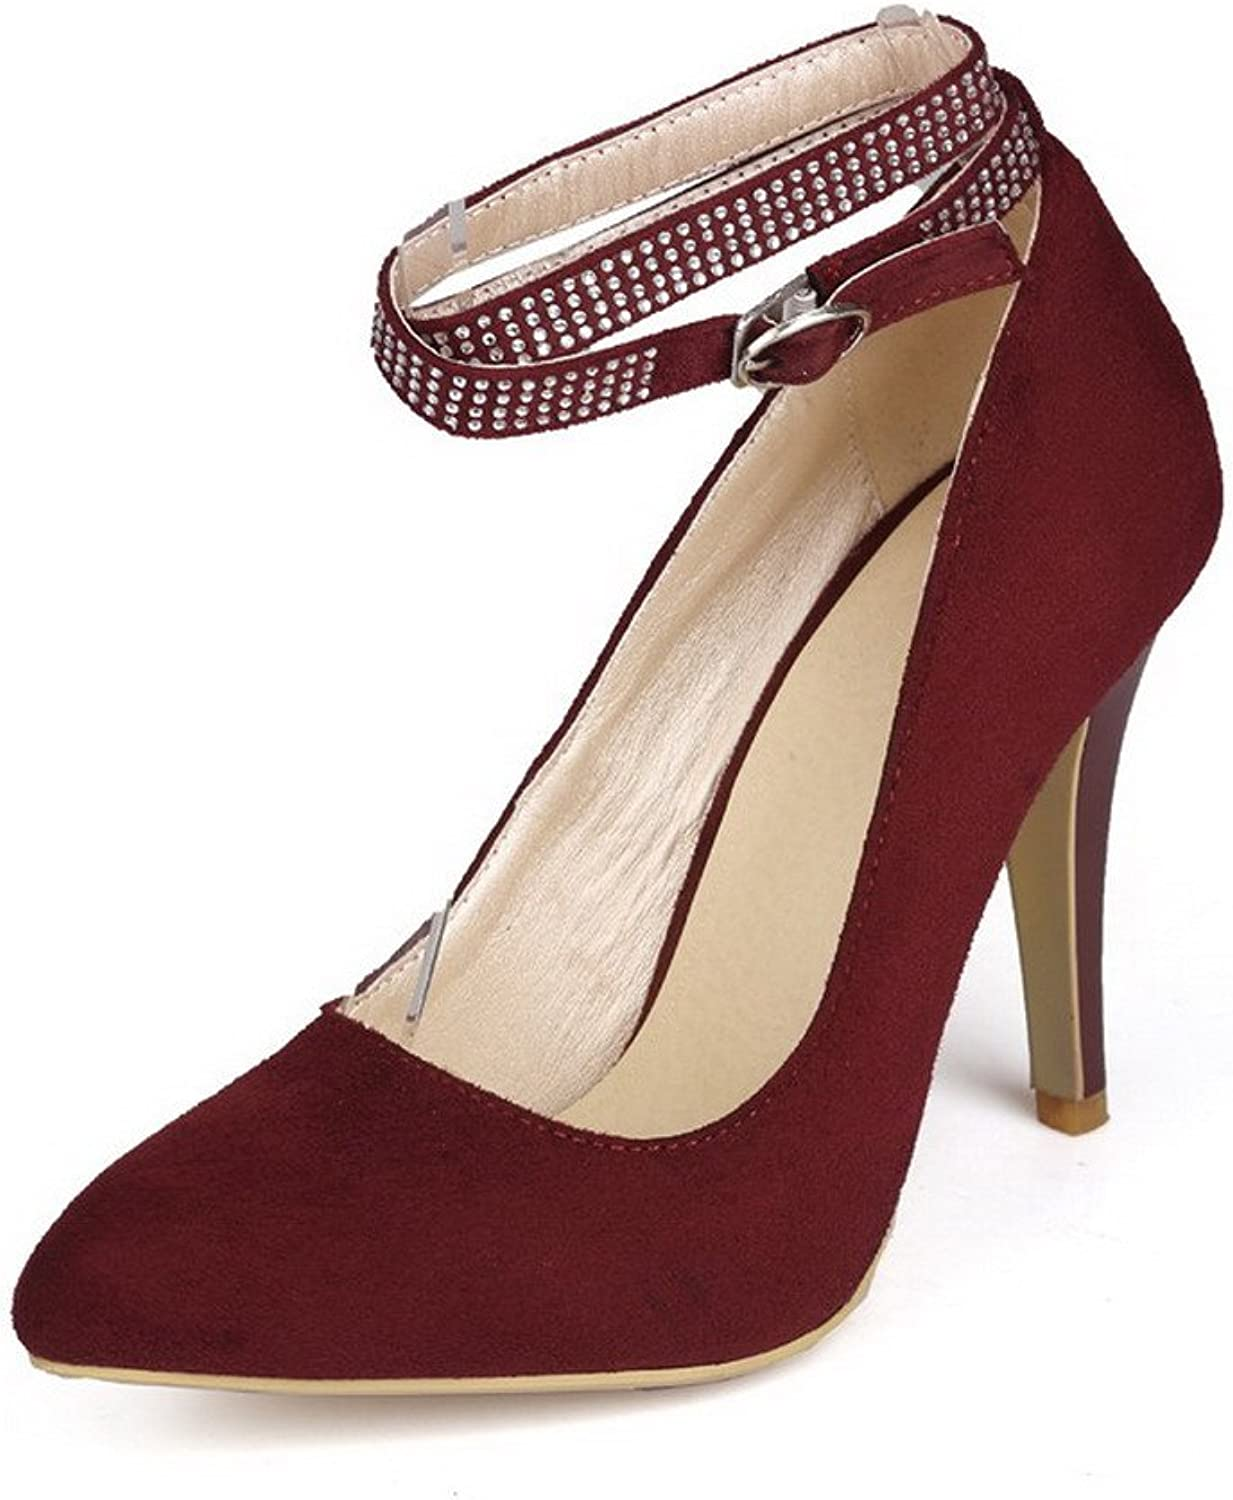 WeenFashion Women's Frosted Pointed Closed Toe High-Heels Buckle Solid Pumps-shoes